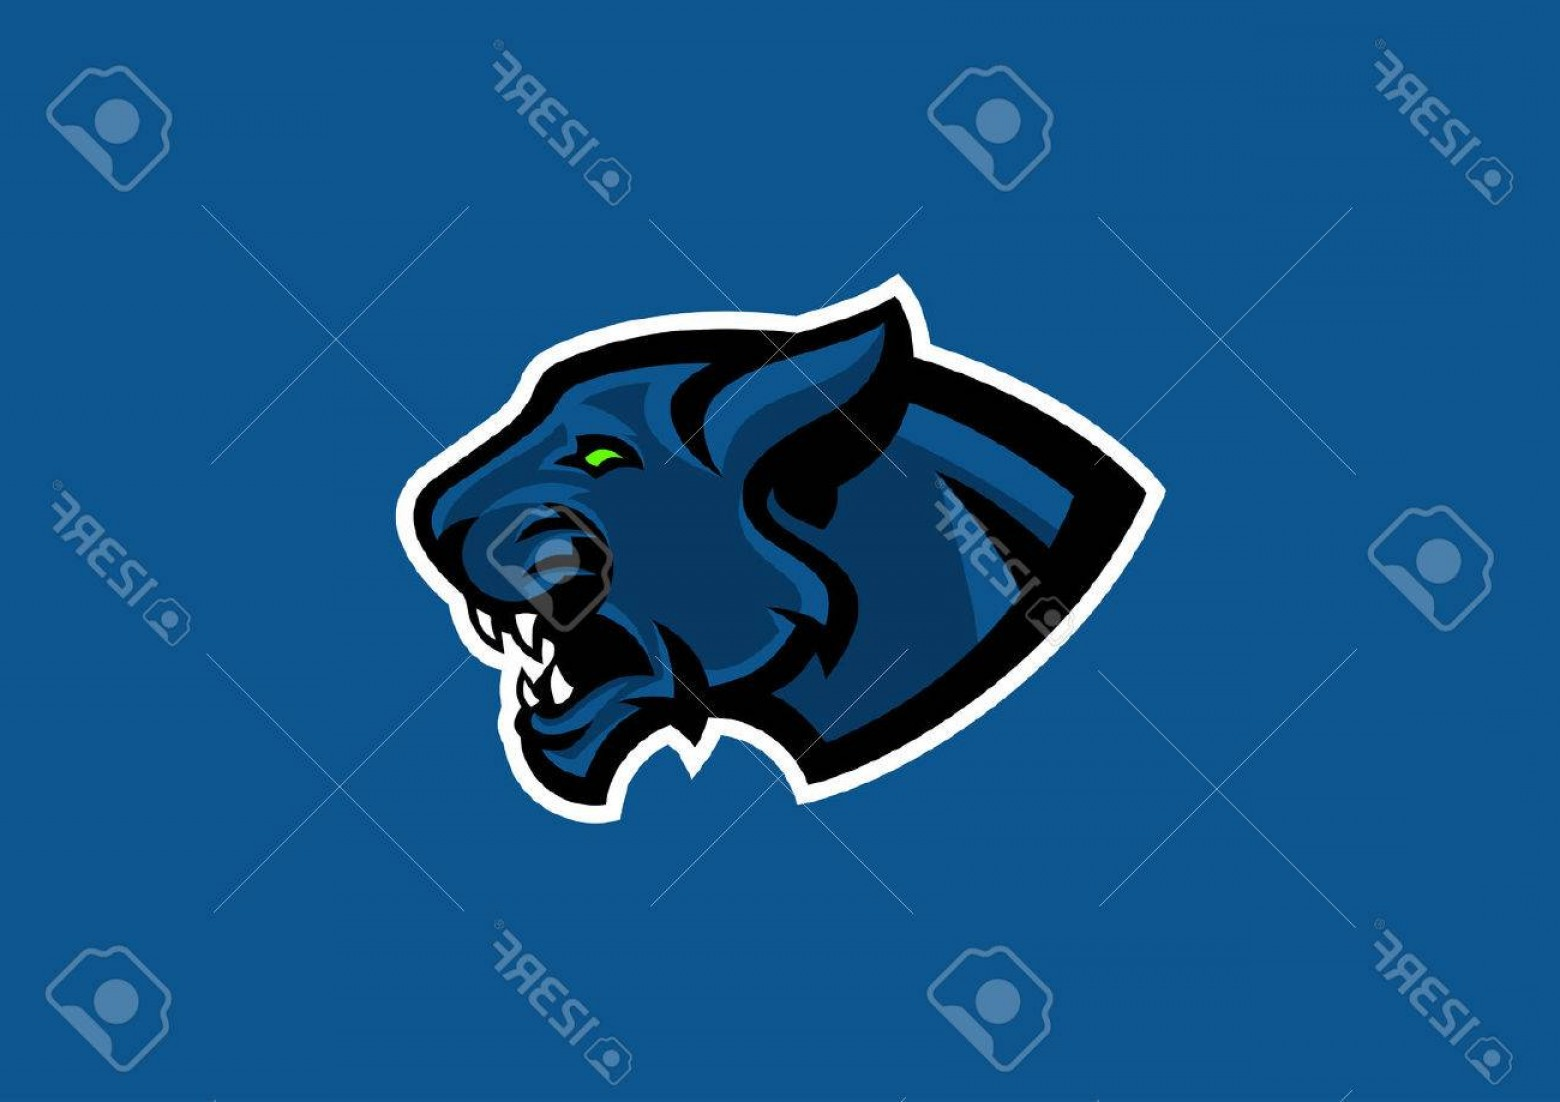 Panther Mascot Vector Sports: Photostock Vector Panther Head Sport Mascot